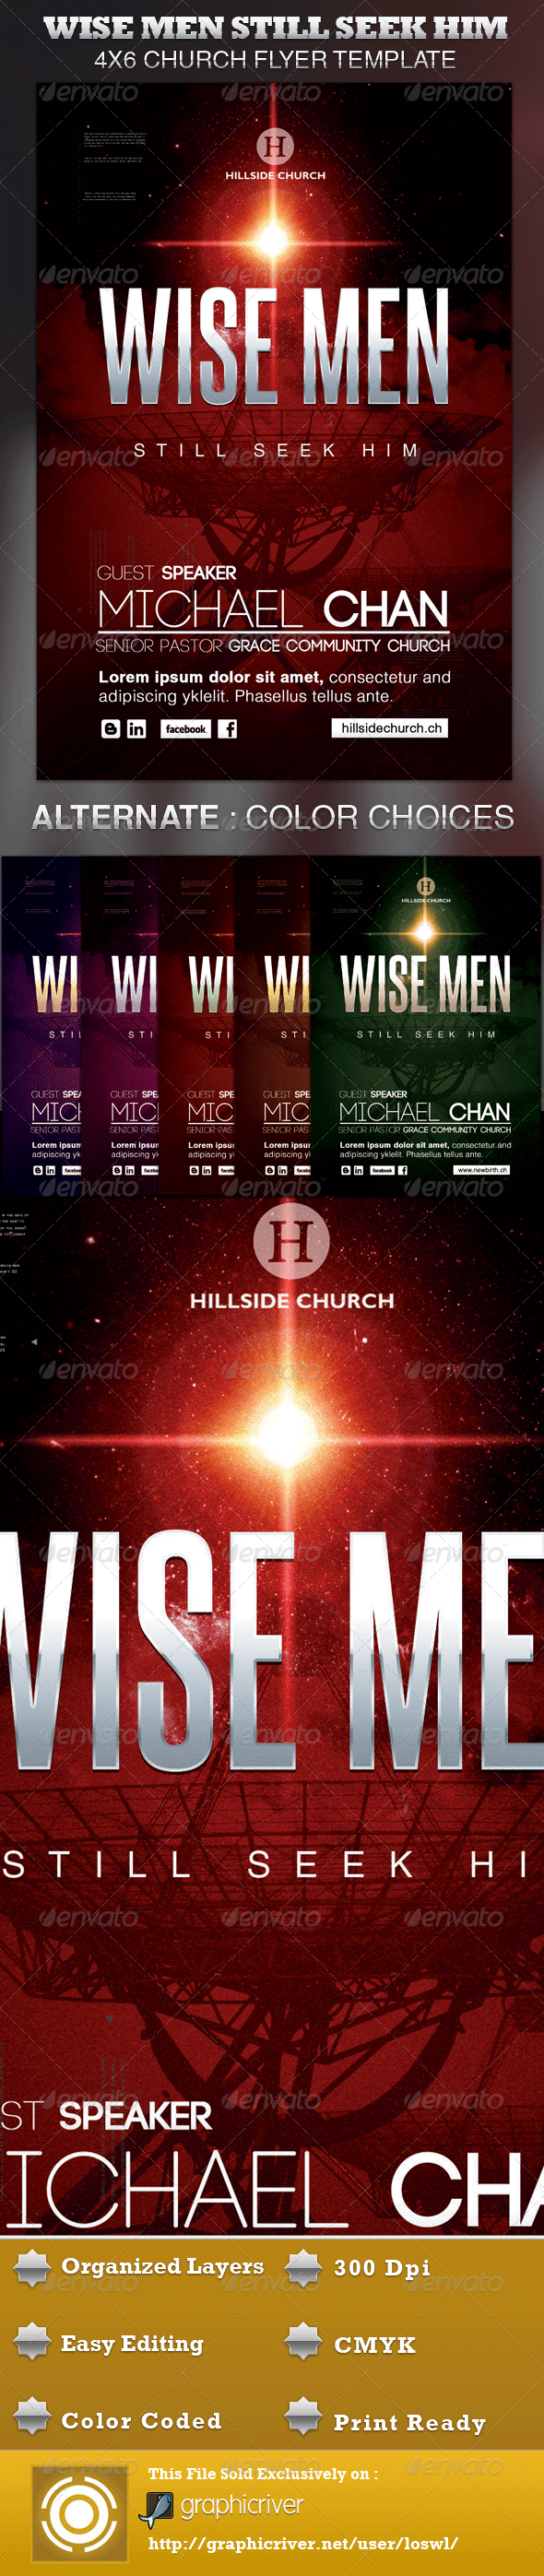 GraphicRiver Wise Men Still Seek Him Church Flyer Template 720591